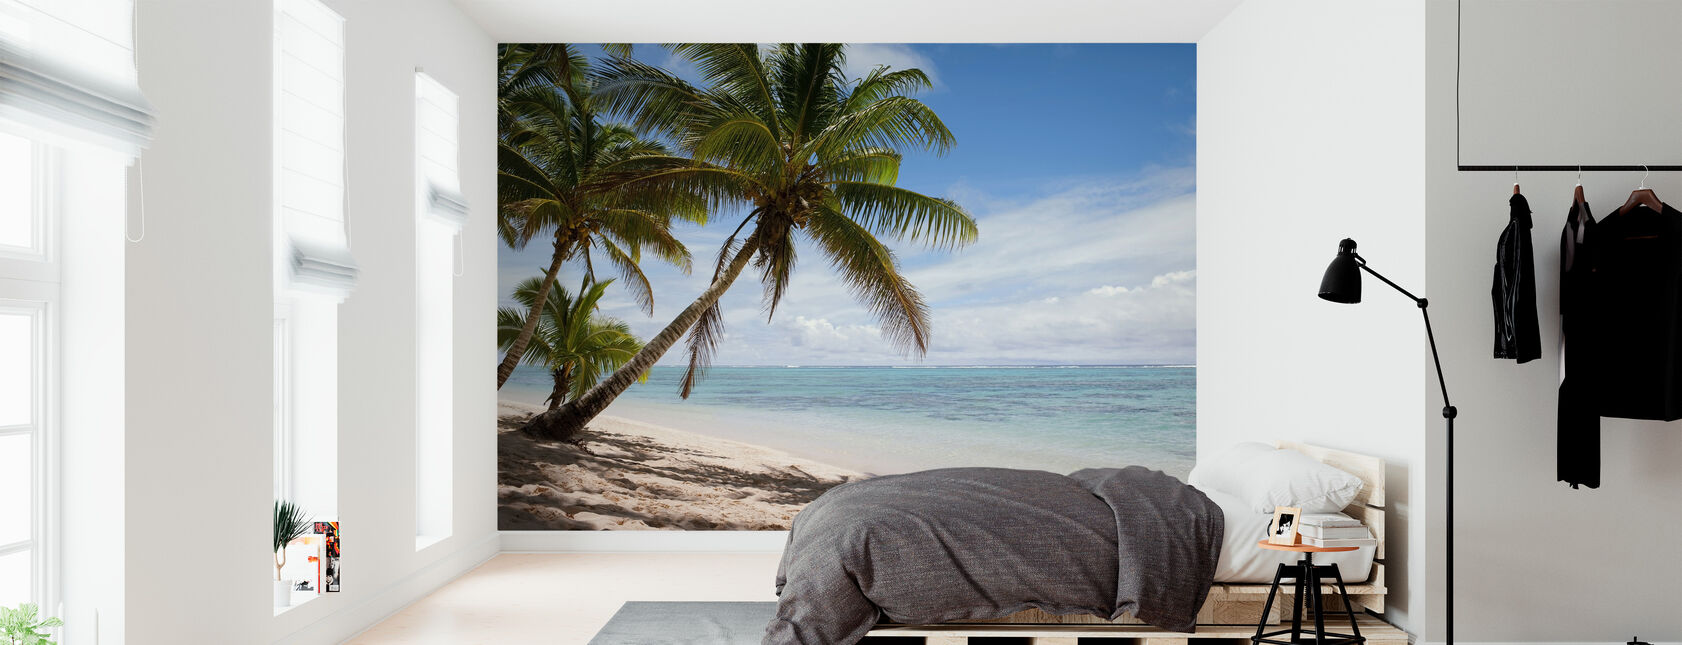 Tropical Beach Scene - Wallpaper - Bedroom